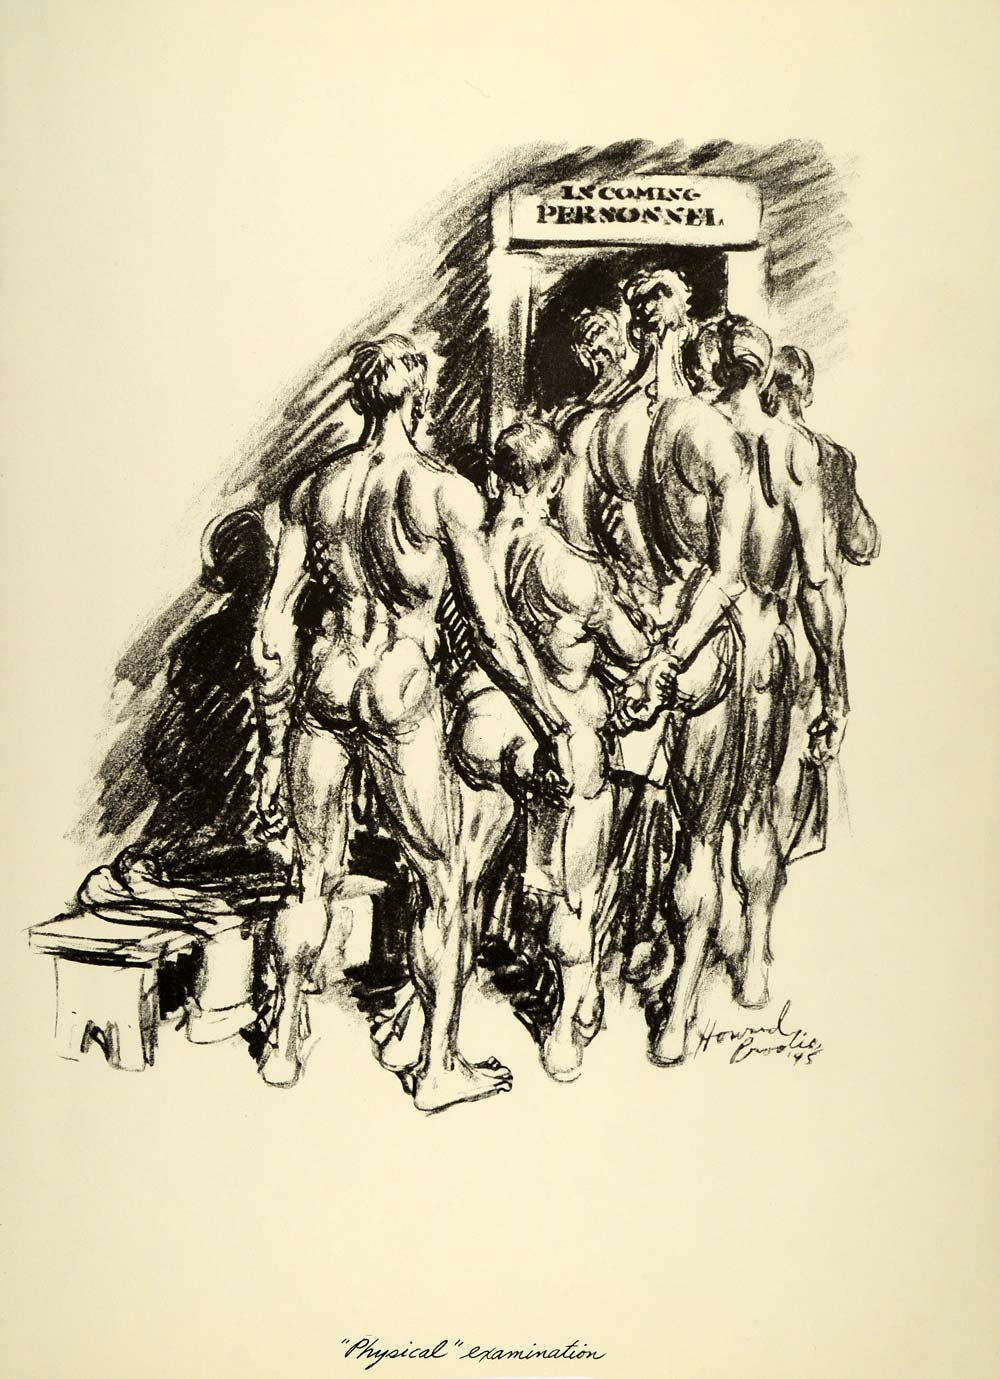 1963 Print Physical Examination Nude Men Howard Brodie Soldier Army World  War II